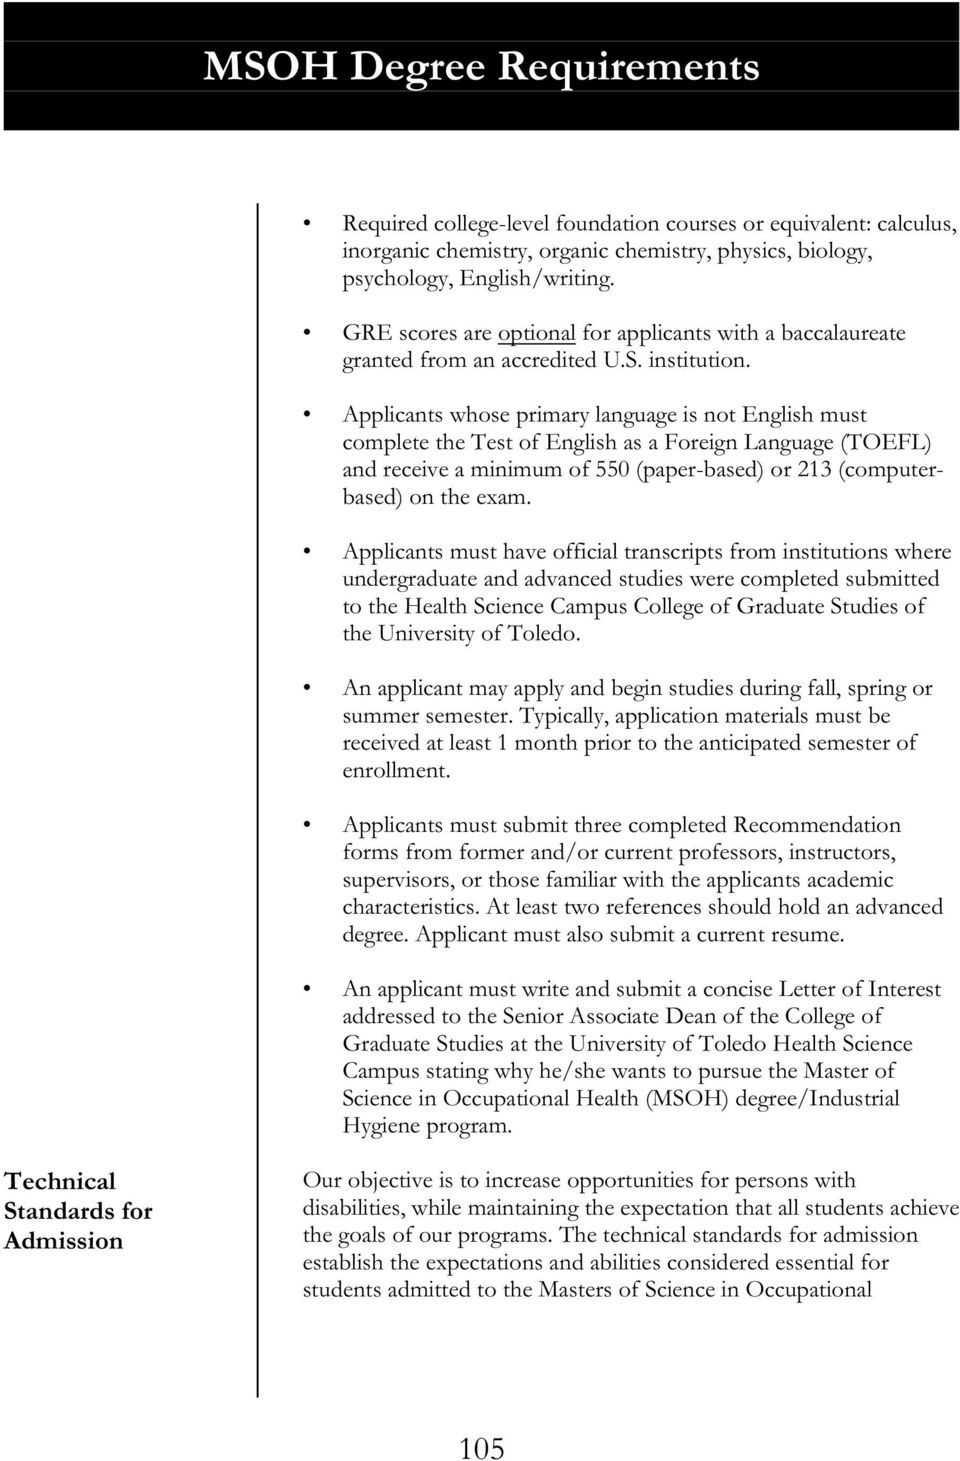 Applicants whose primary language is not English must complete the Test of English as a Foreign Language (TOEFL) and receive a minimum of 550 (paper-based) or 213 (computerbased) on the exam.